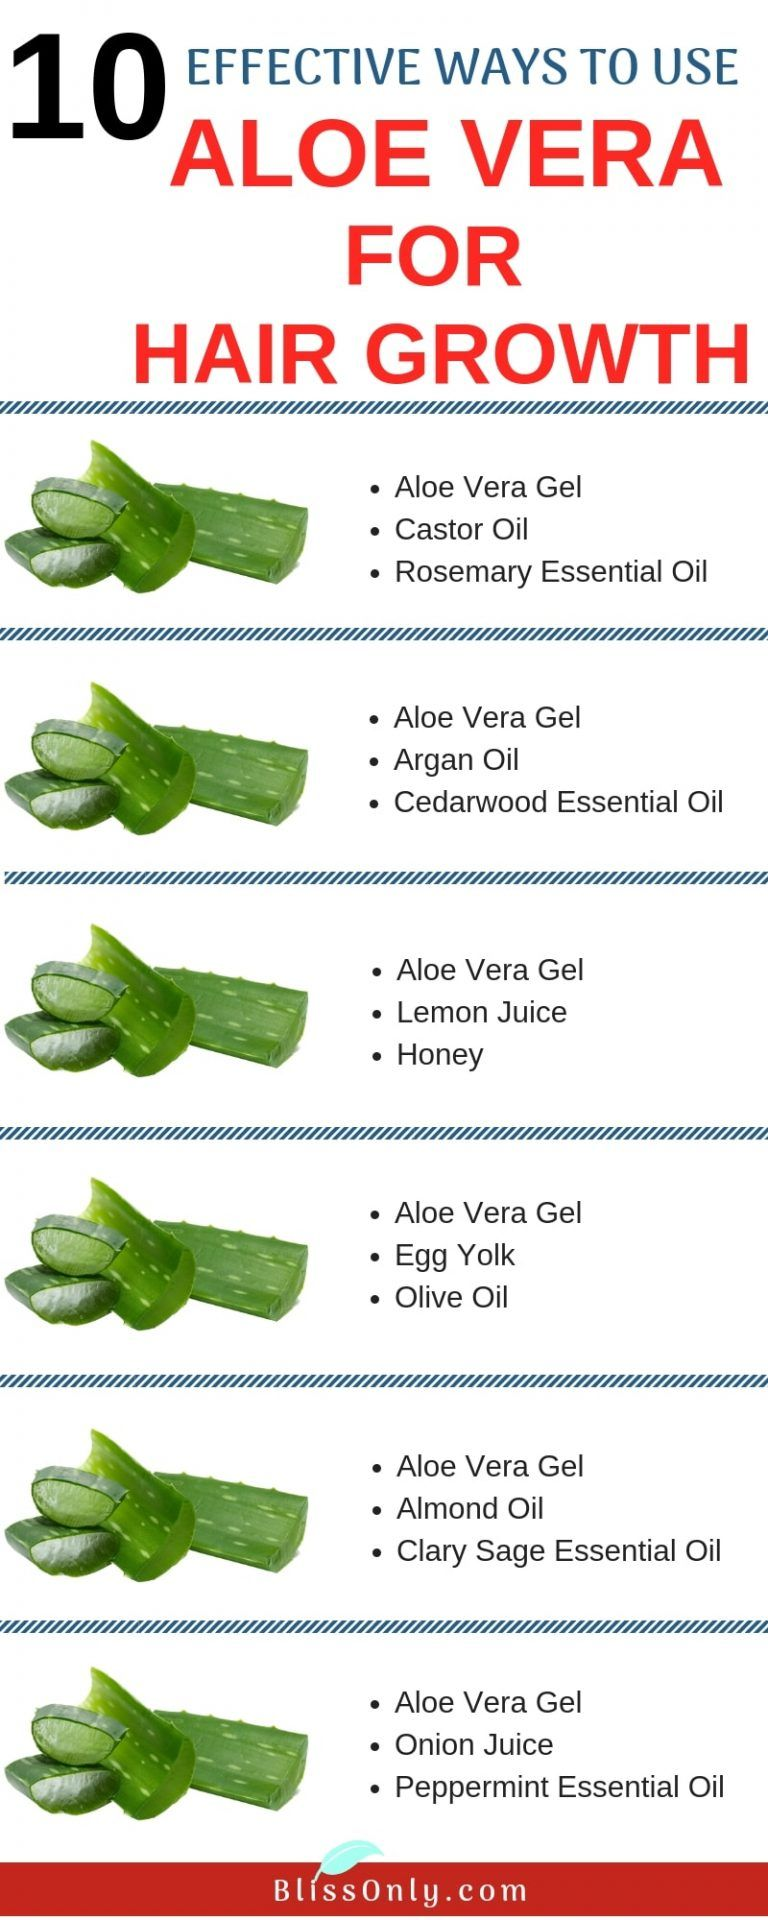 10 Effective Ways To Use Aloe Vera For Hair Growth Aloe Vera For